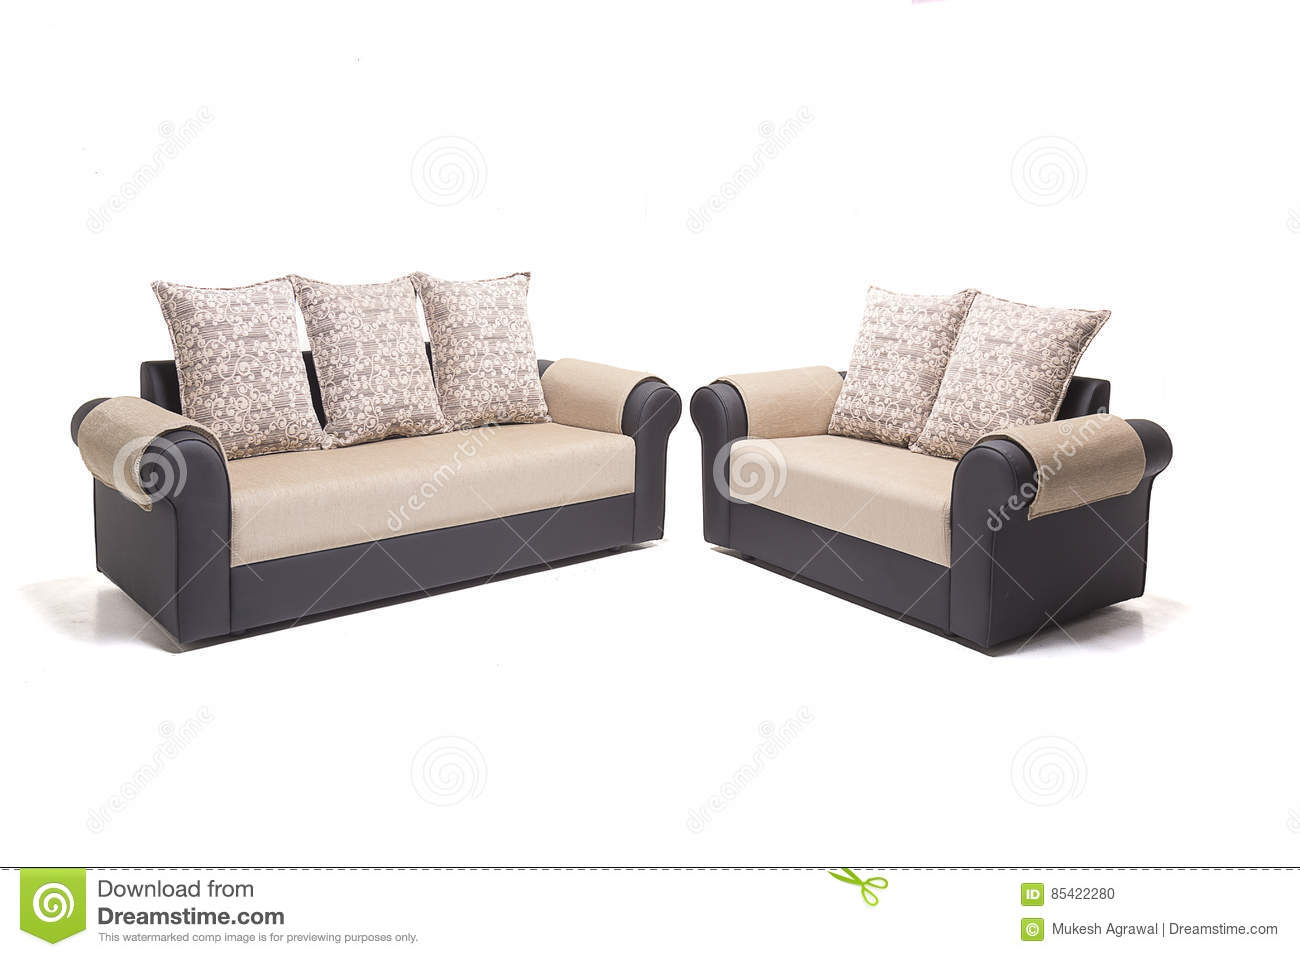 Black Leather Sofa Set With Golden Covers And Cushions Over It With